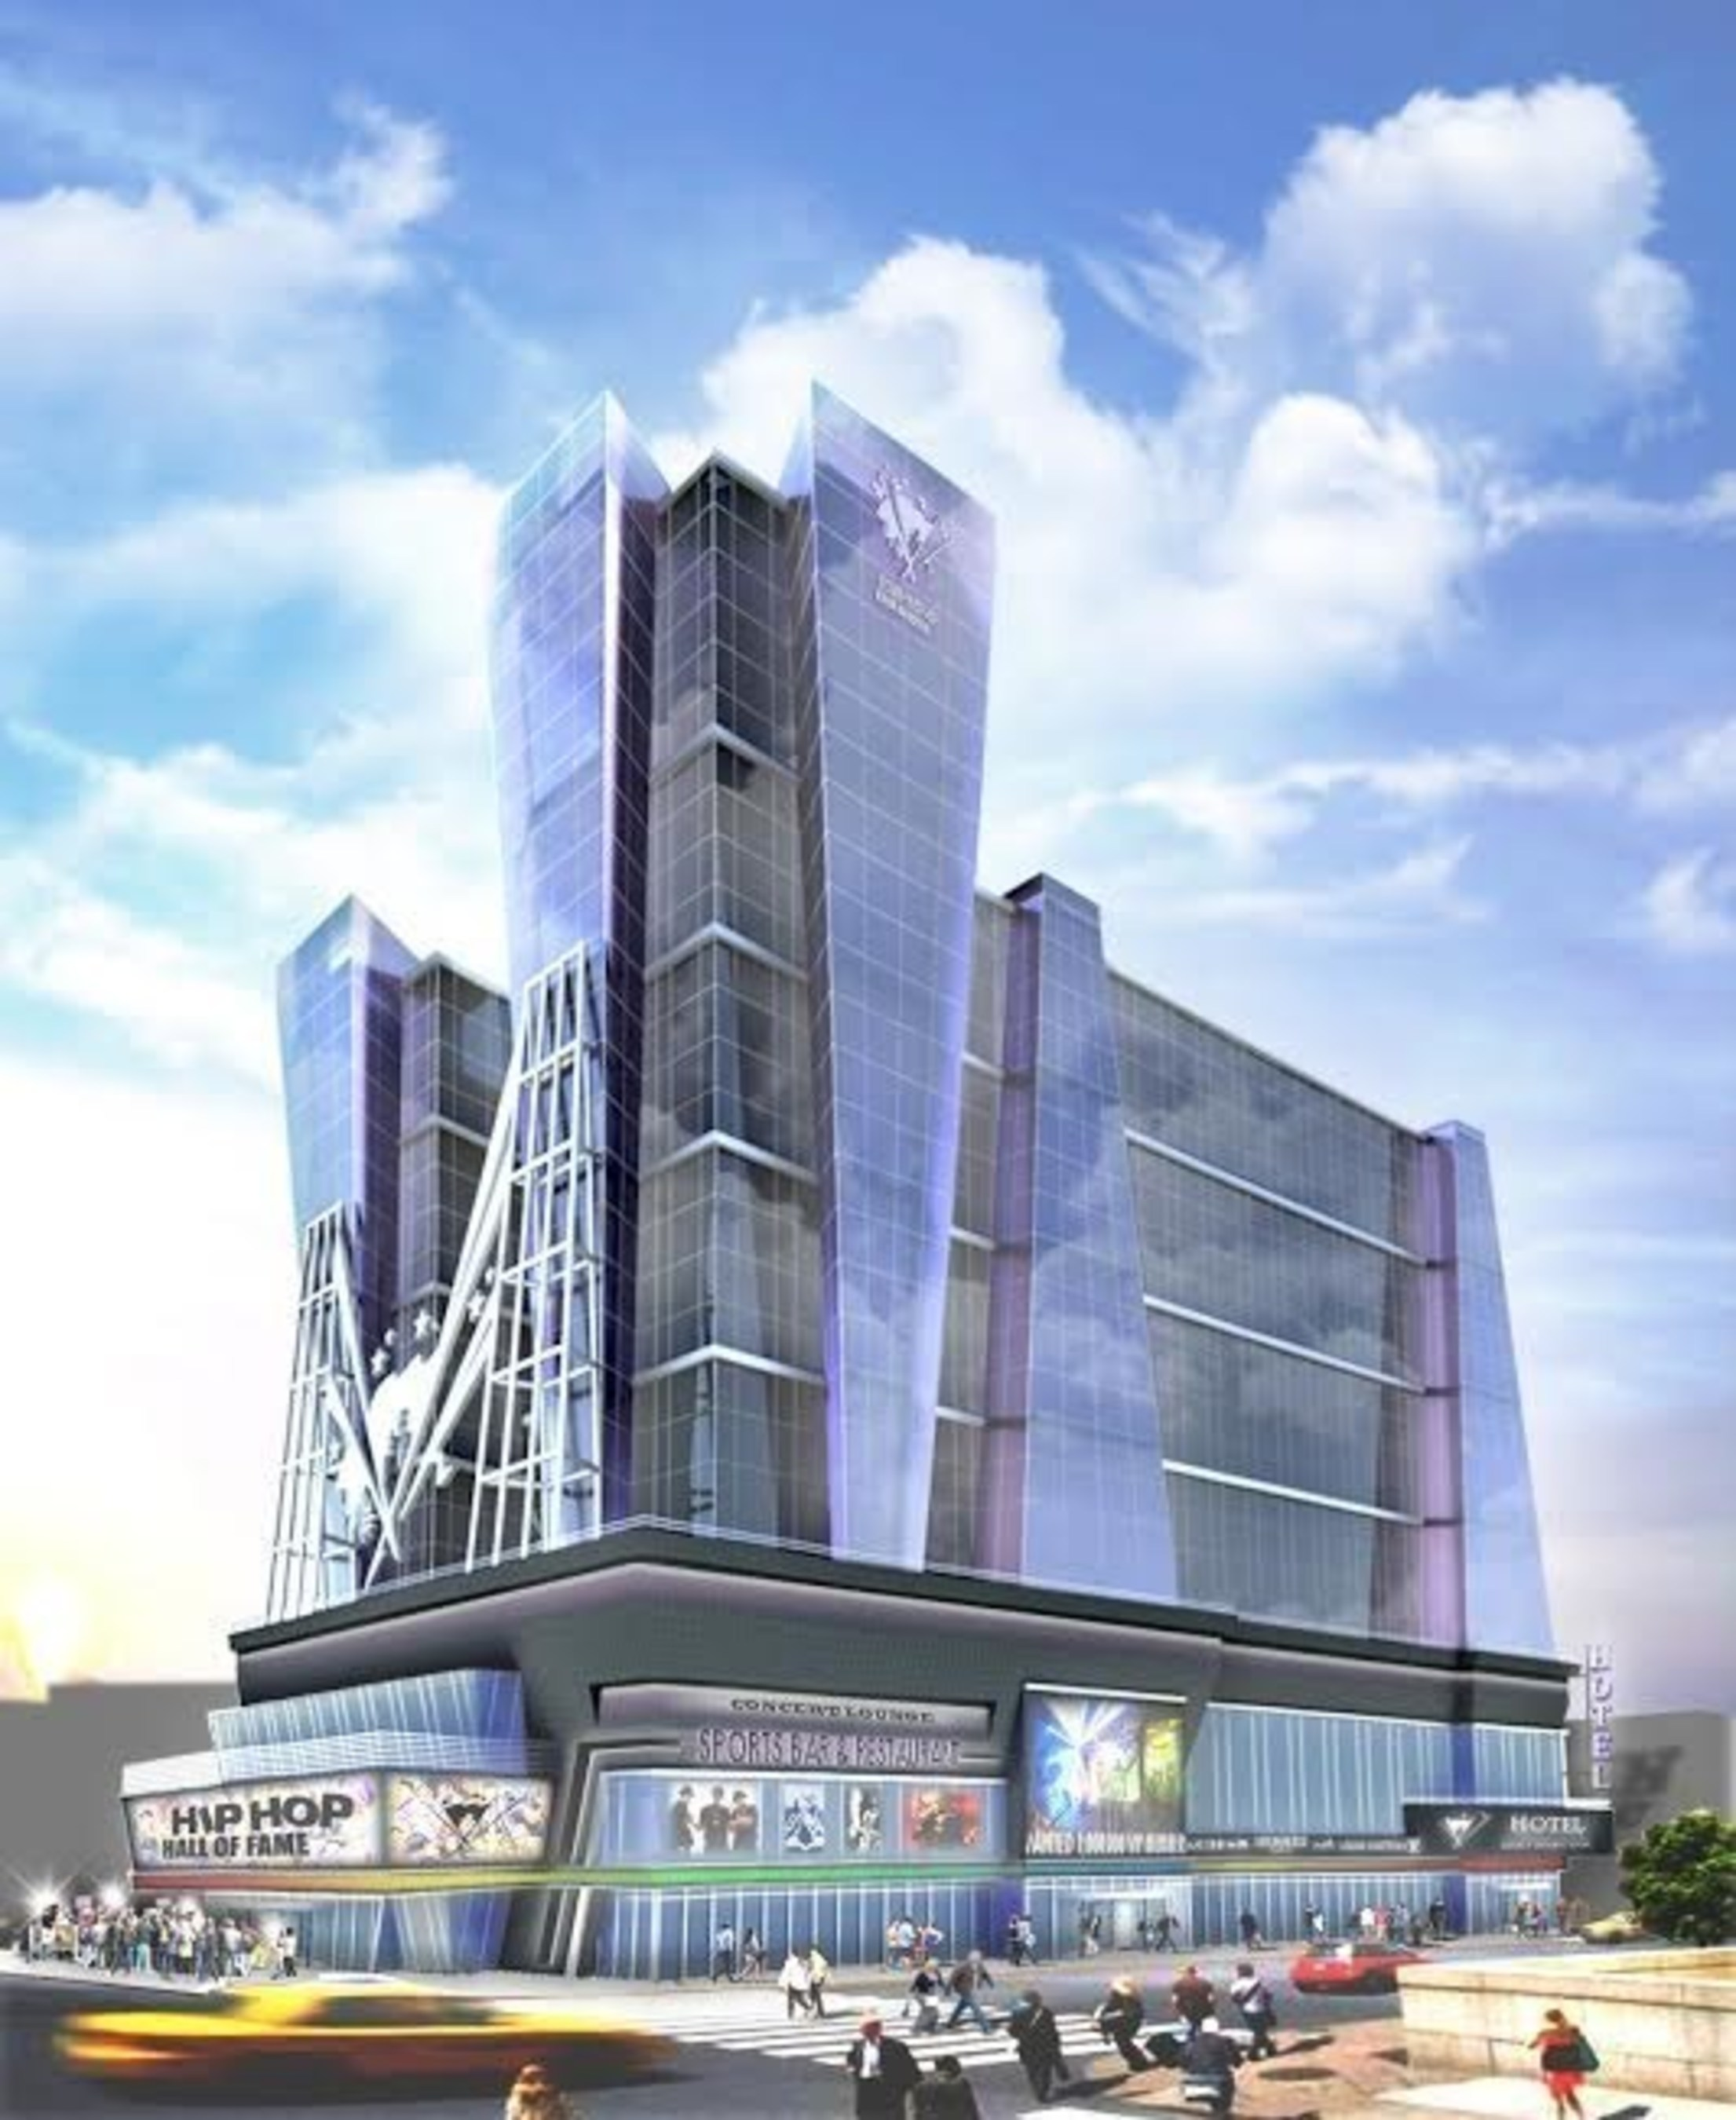 Hip Hop Hall of Fame + Museum & Hotel Entertainment Complex State of The Art Facility Coming to New York City in Manhattan. Daytime view.